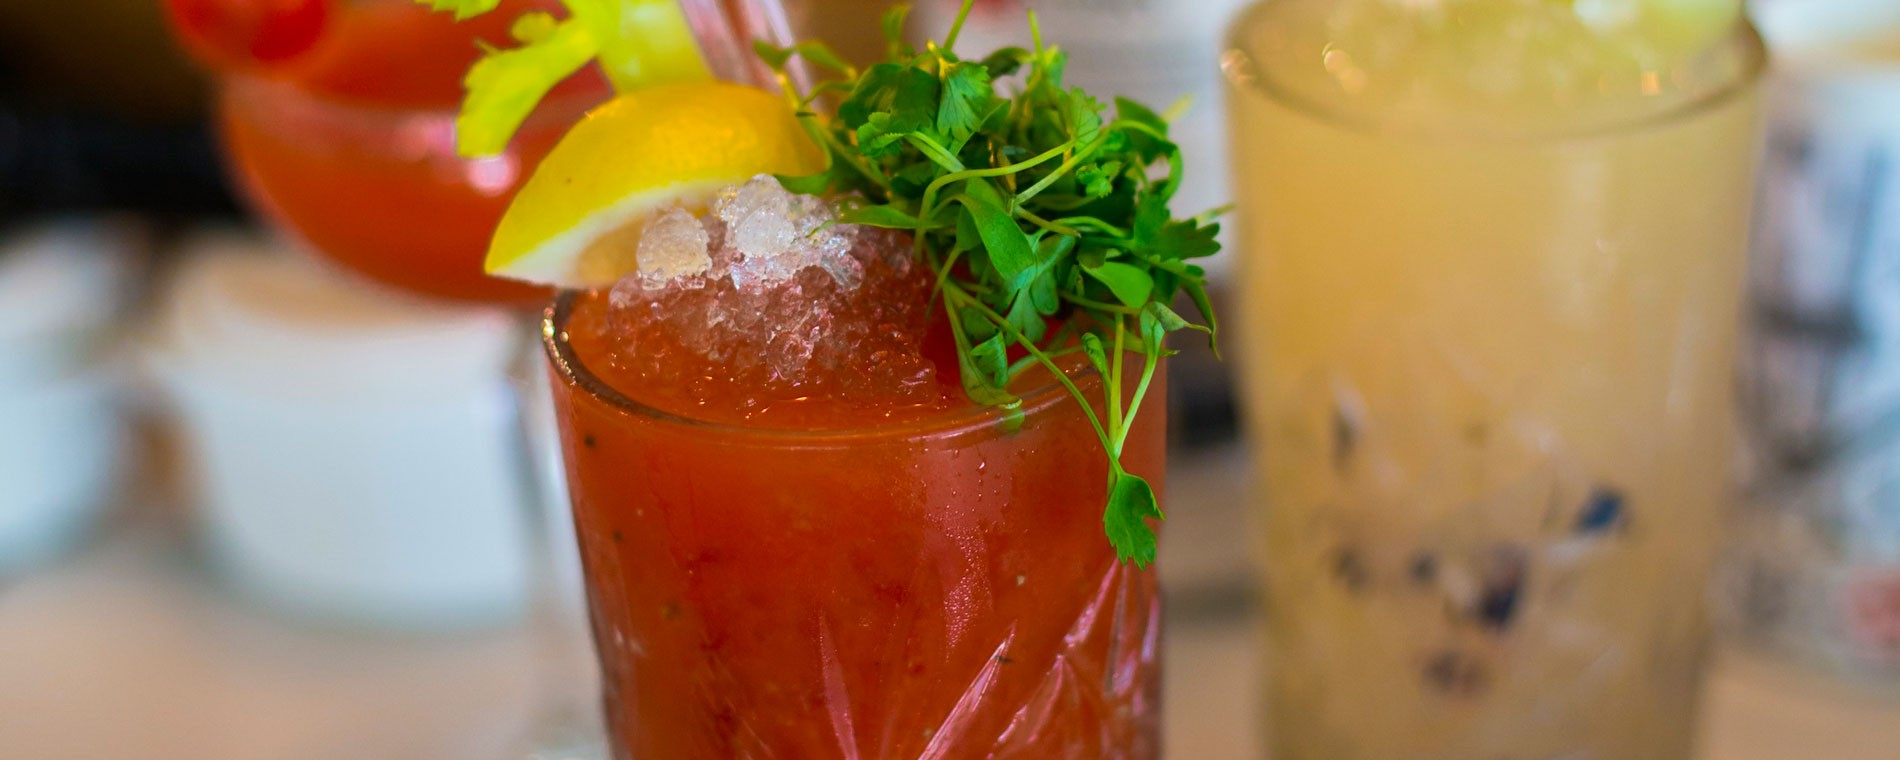 bloody-mary-cocktail-week-hangover6